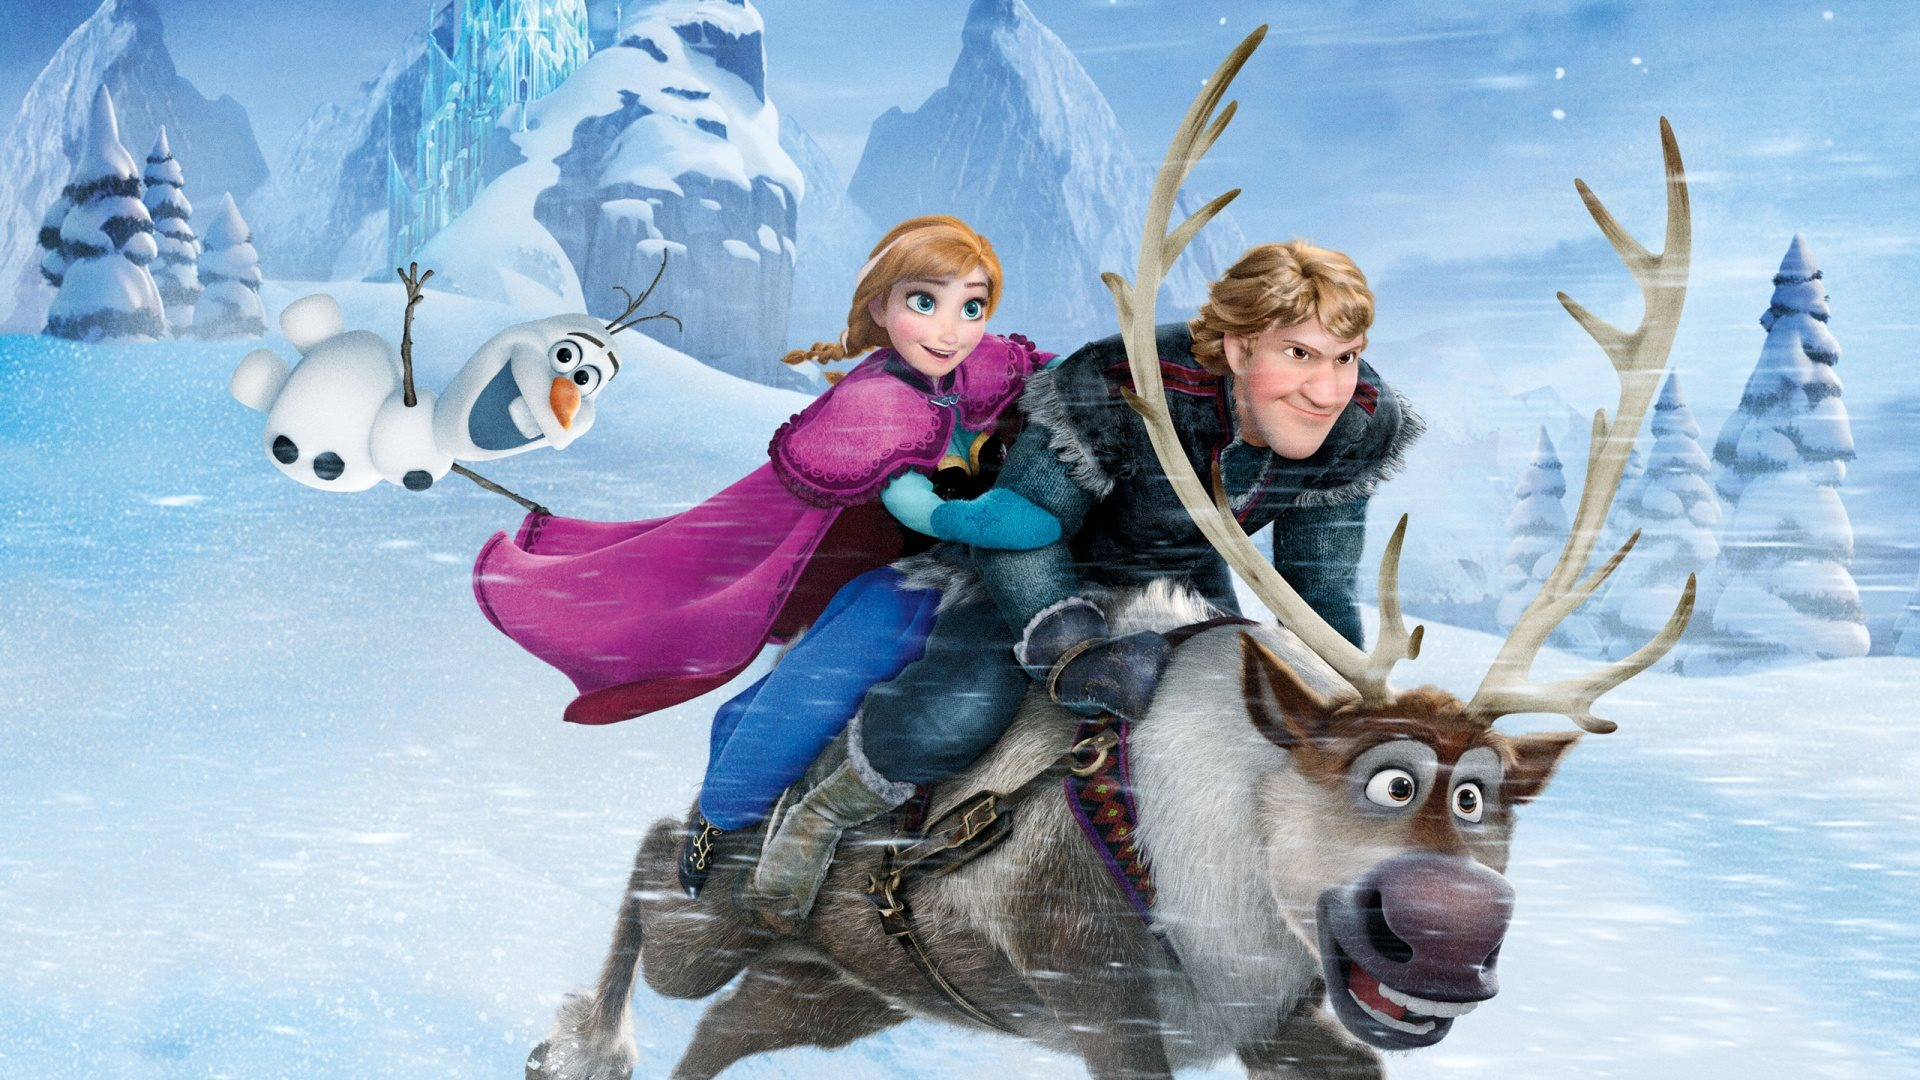 frozen (2013) hd wallpaper - wallpaper, high definition, high